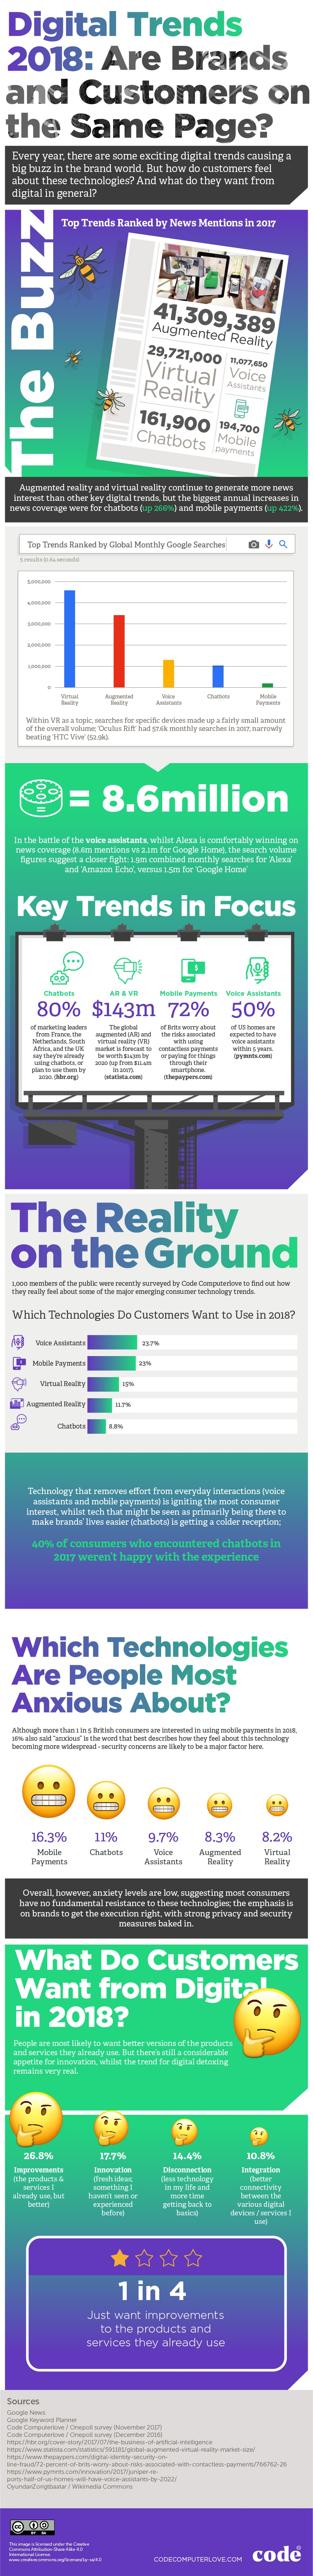 Which Technologies Do Your Customers Actually Want to Use ...